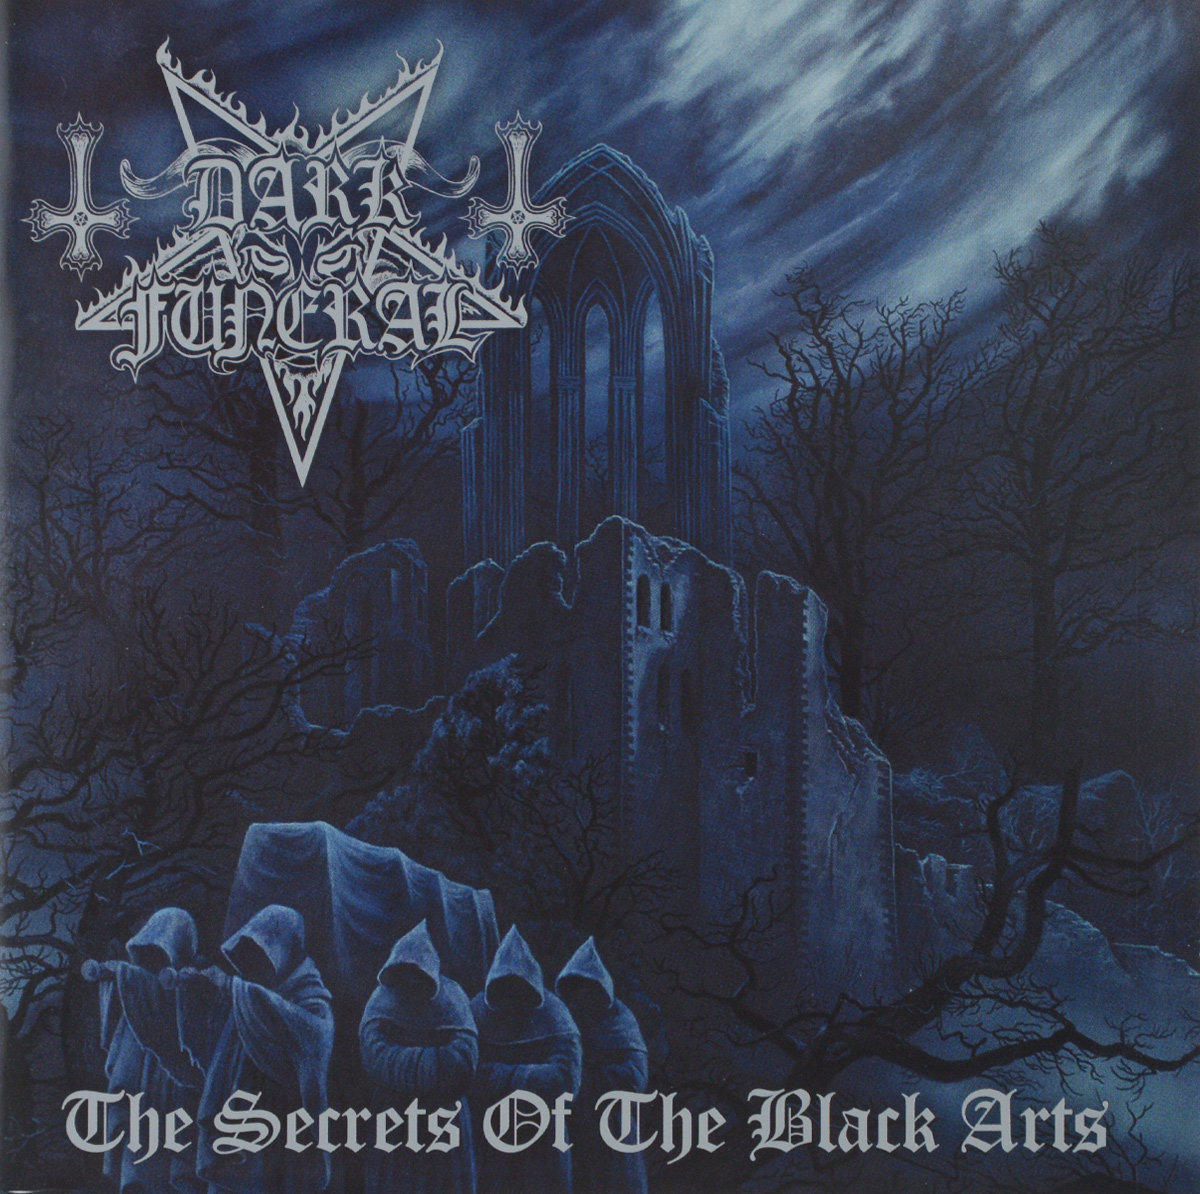 Dark Funeral Dark Funeral. The Secrets Of The Black Arts (2 CD) катушка индуктивности mundorf m coil zero ohm vn300 2 mh 3 mm